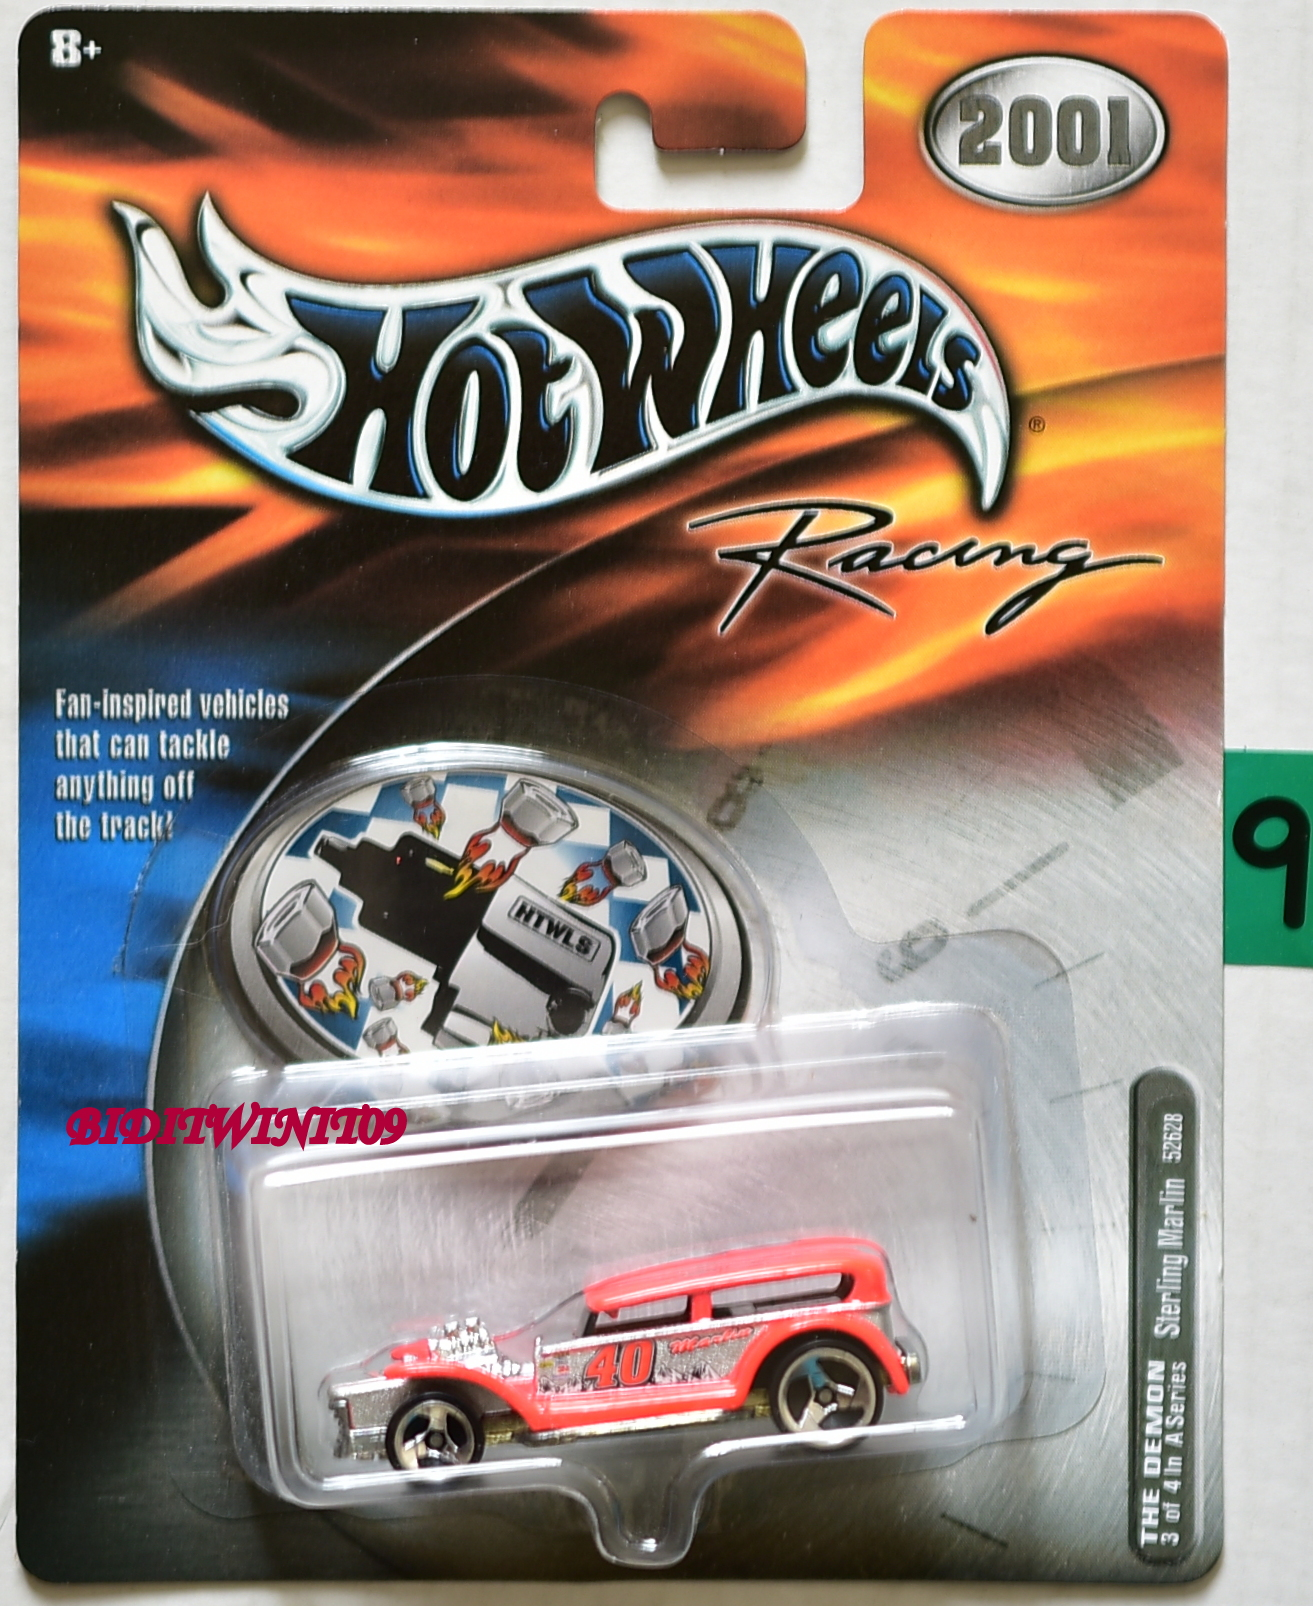 2001 HOT WHEELS RACING THE DEMON #3/4 STERLING MARLIN E+